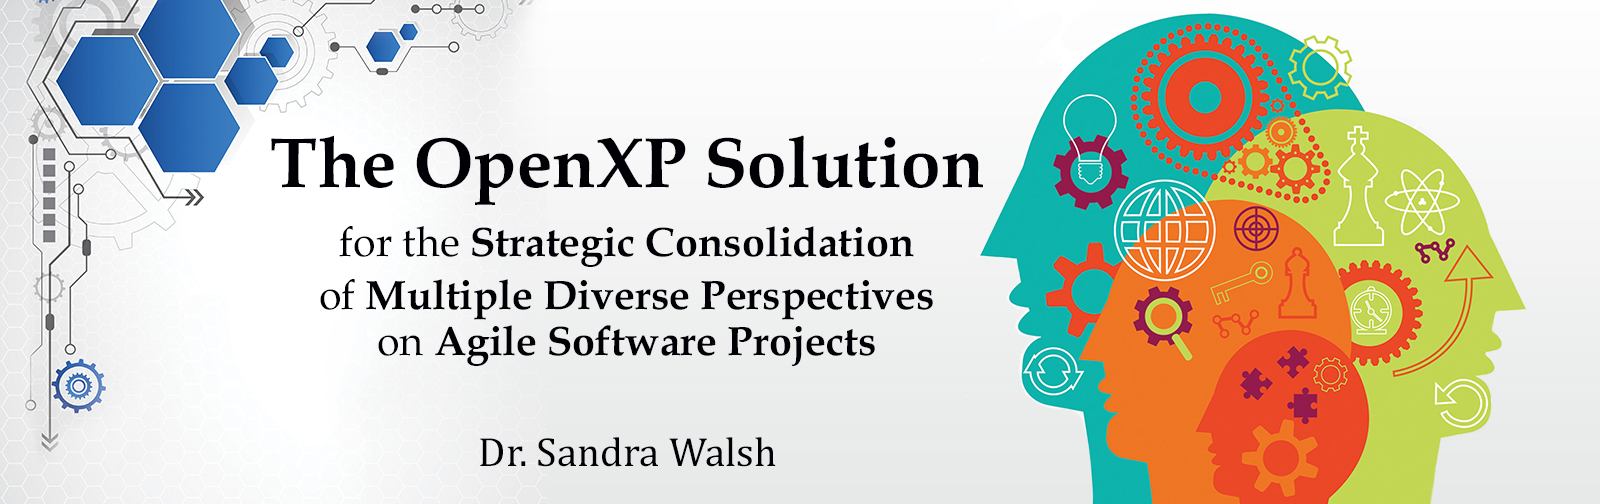 The OpenXP Solution